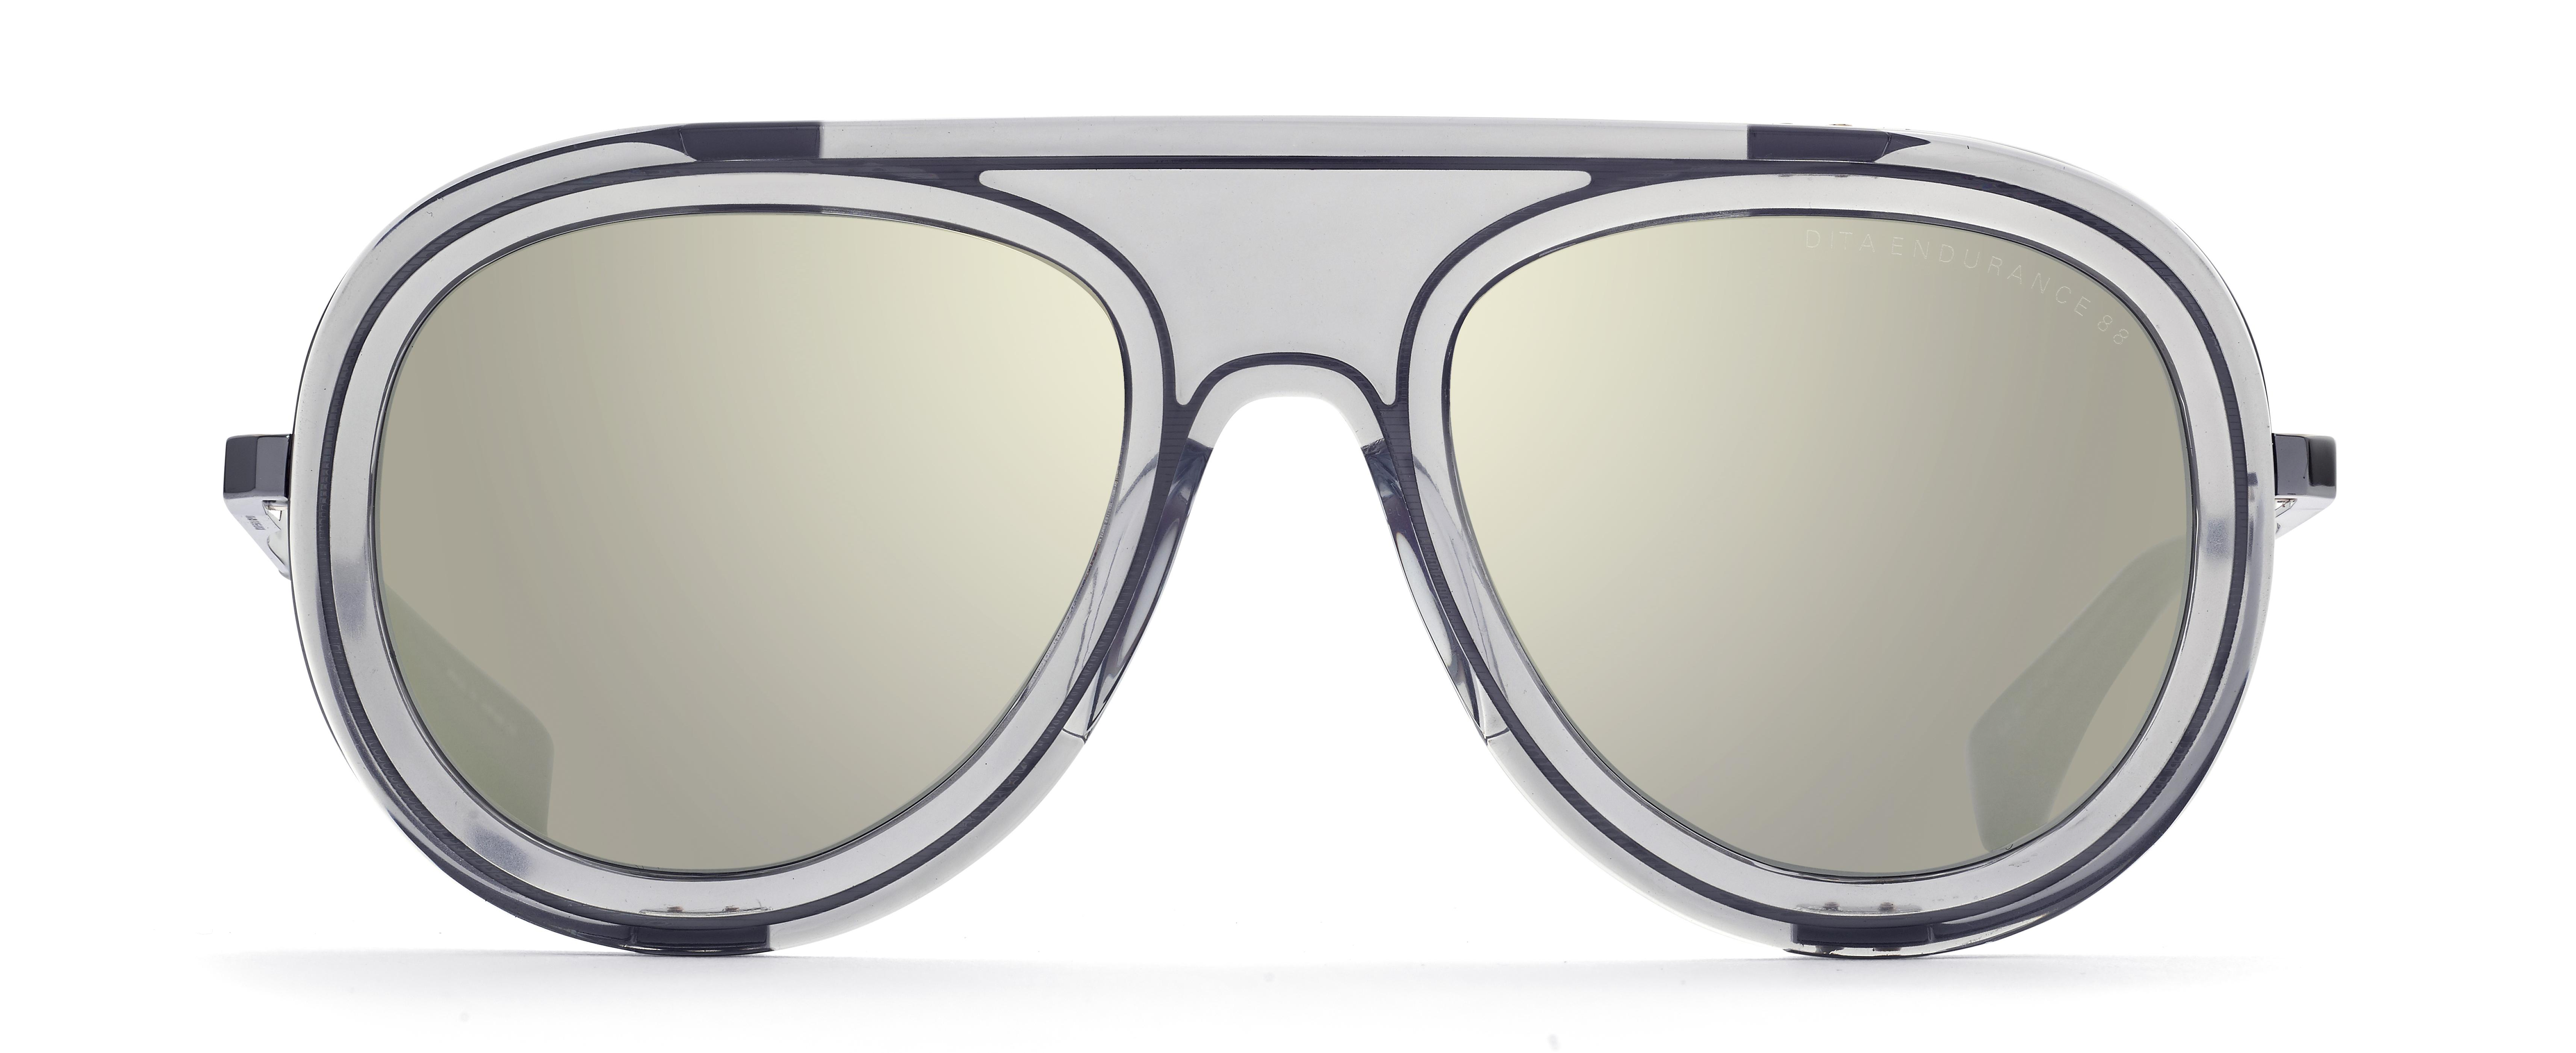 6077b5bd4b360f Lyst - DITA Endurance 88 Aviator Men s Sunglasses in Gray for Men